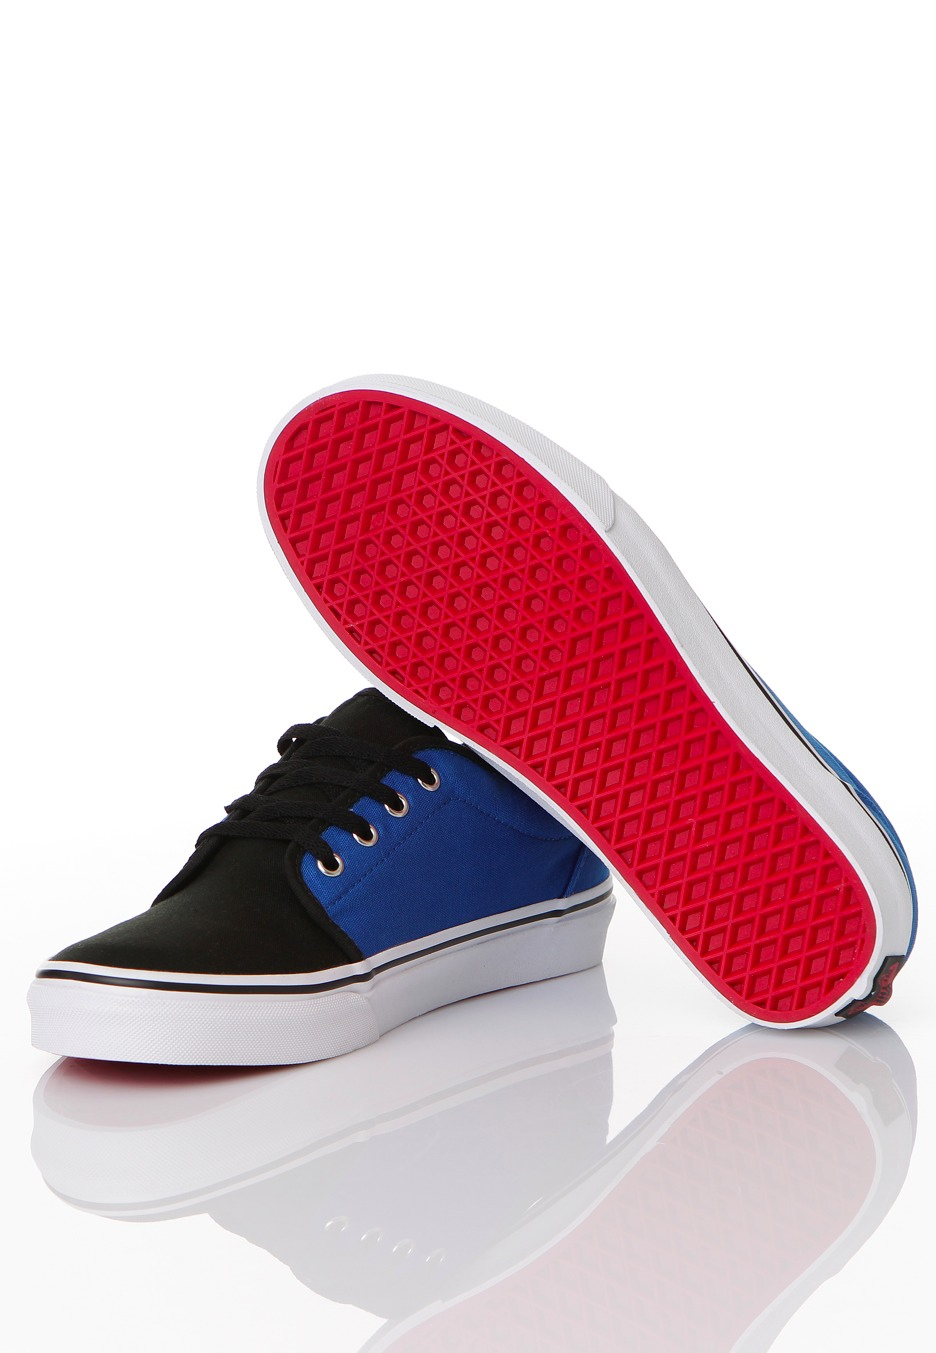 Vans - 106 Vulcanized Nautical Blue Black - Scarpe - Liveyourmusic ... 405a6acd1